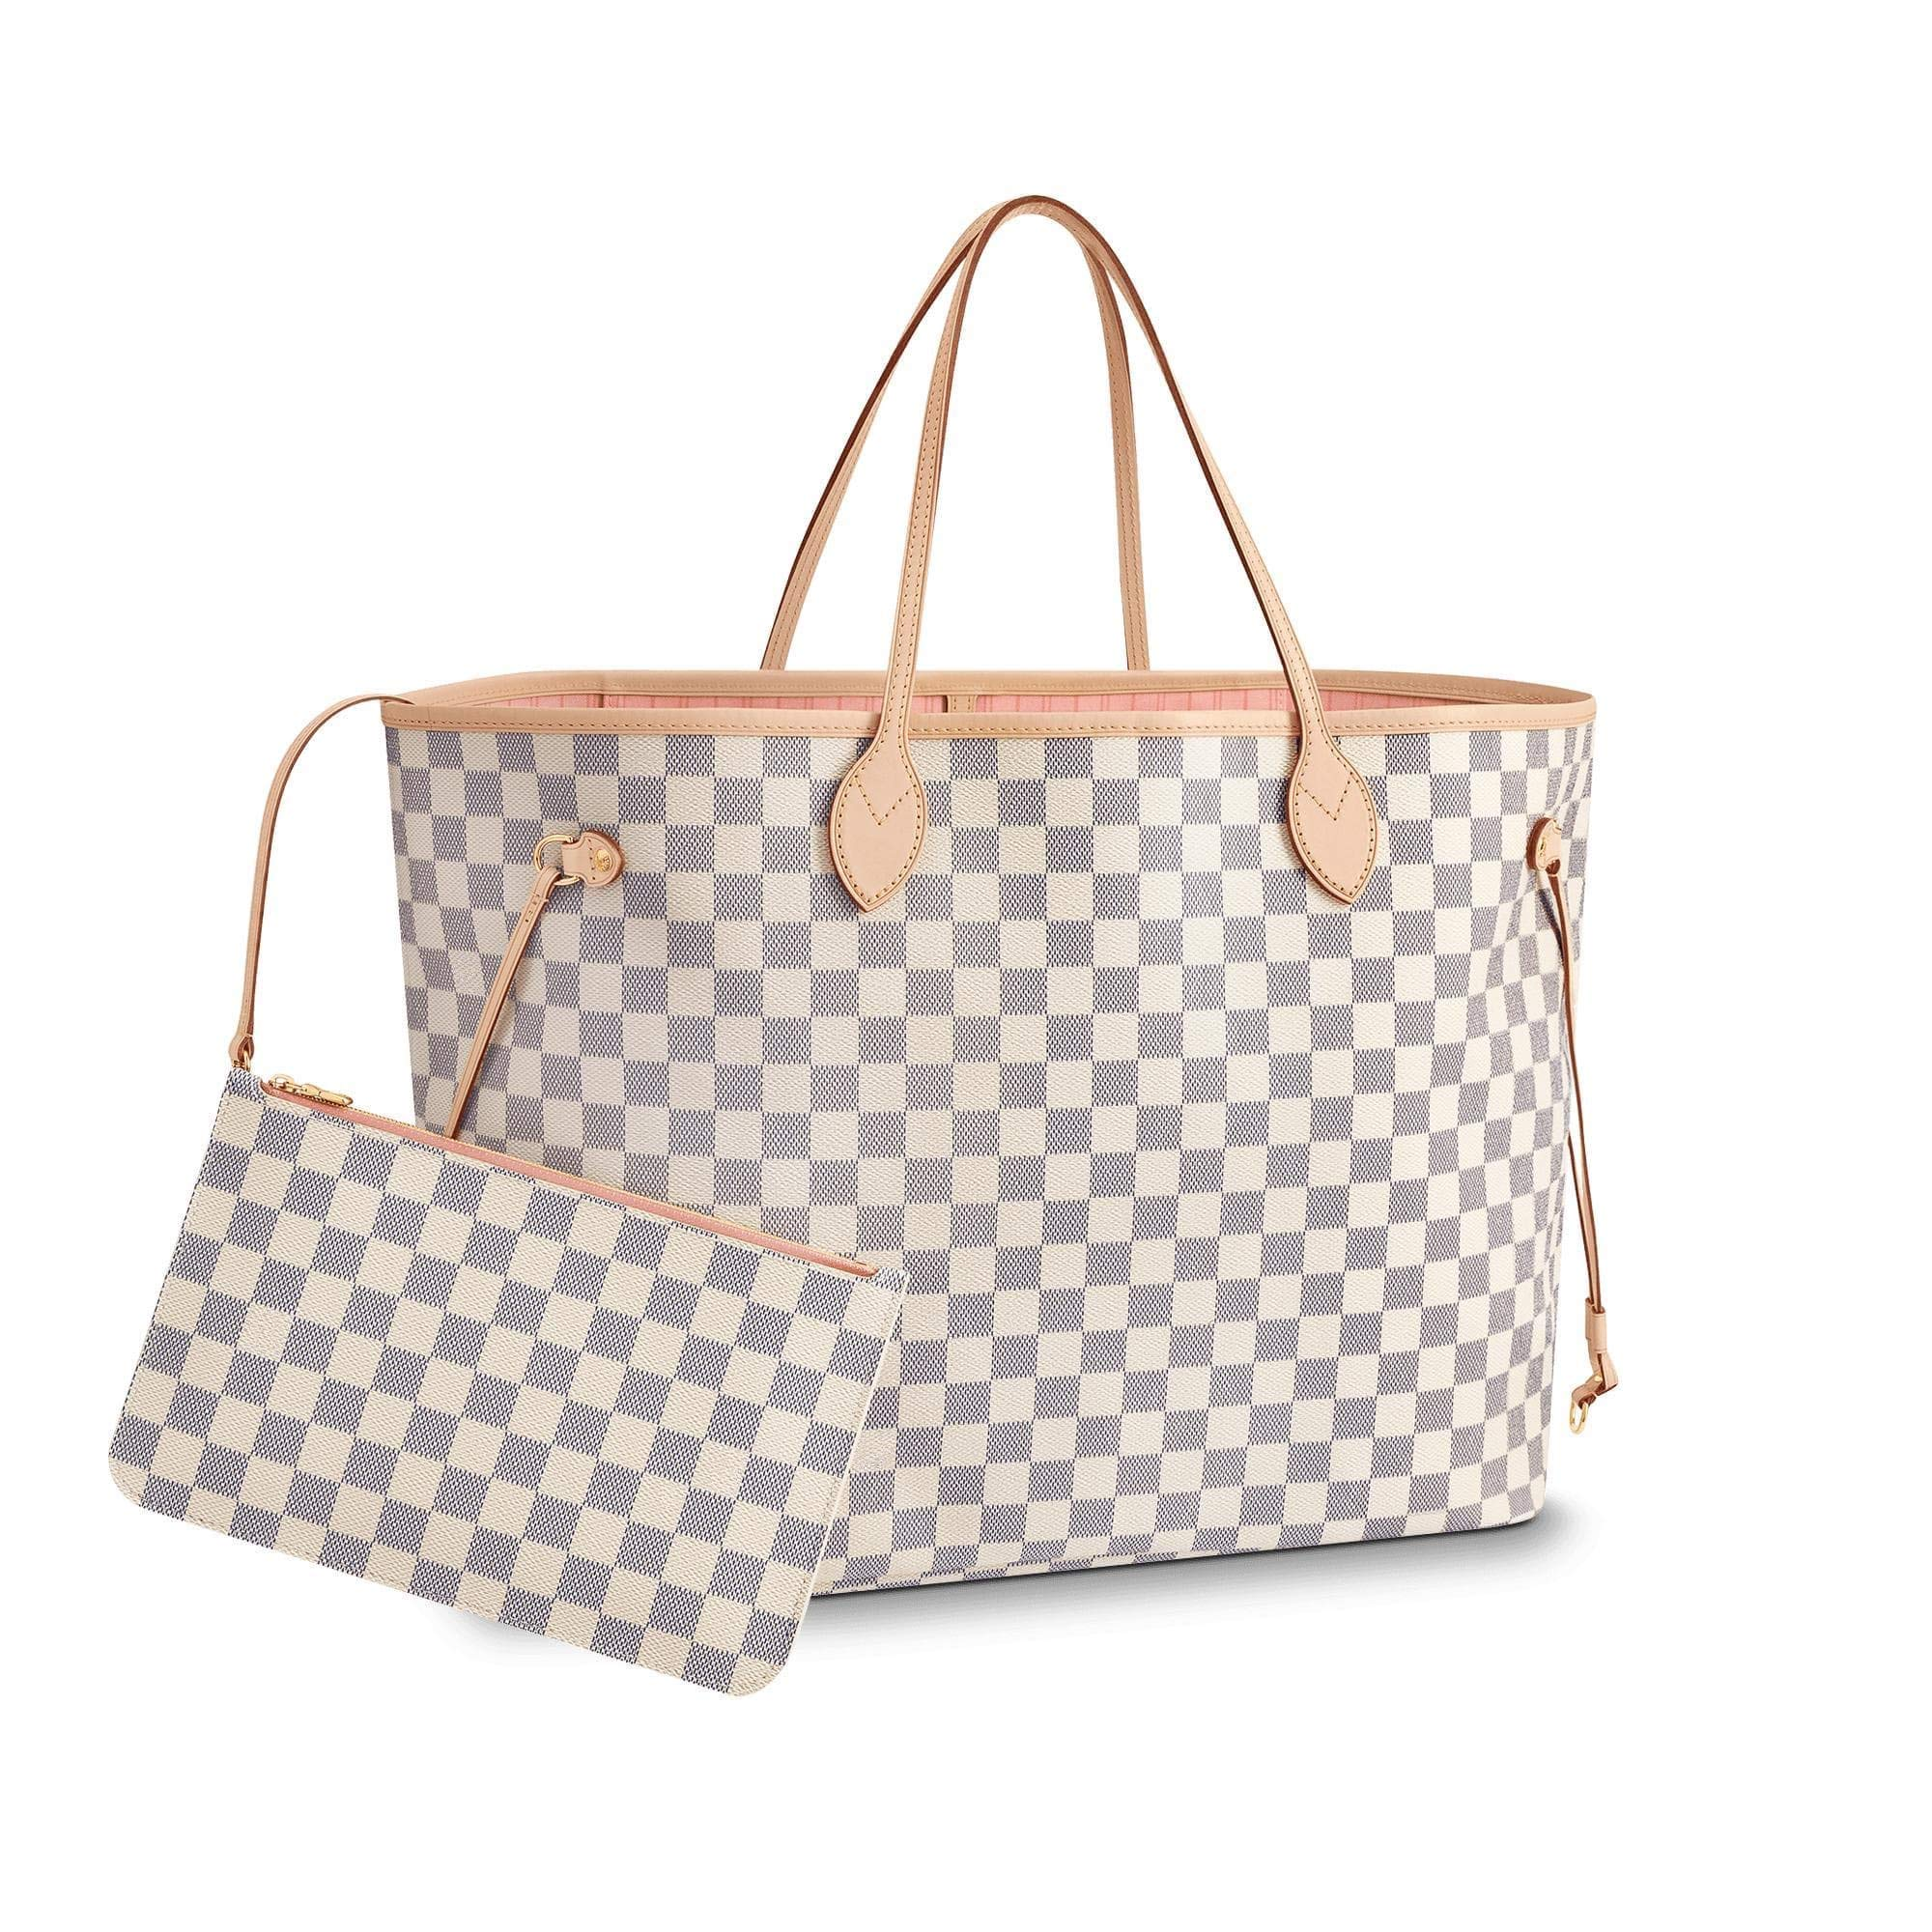 DMYTROVITCHUK V Style Bags Women Handbag Tote GM Shoulder Bag Organizer Beige Color Made Of Canvas Size 15.7 x 7.9 x 13